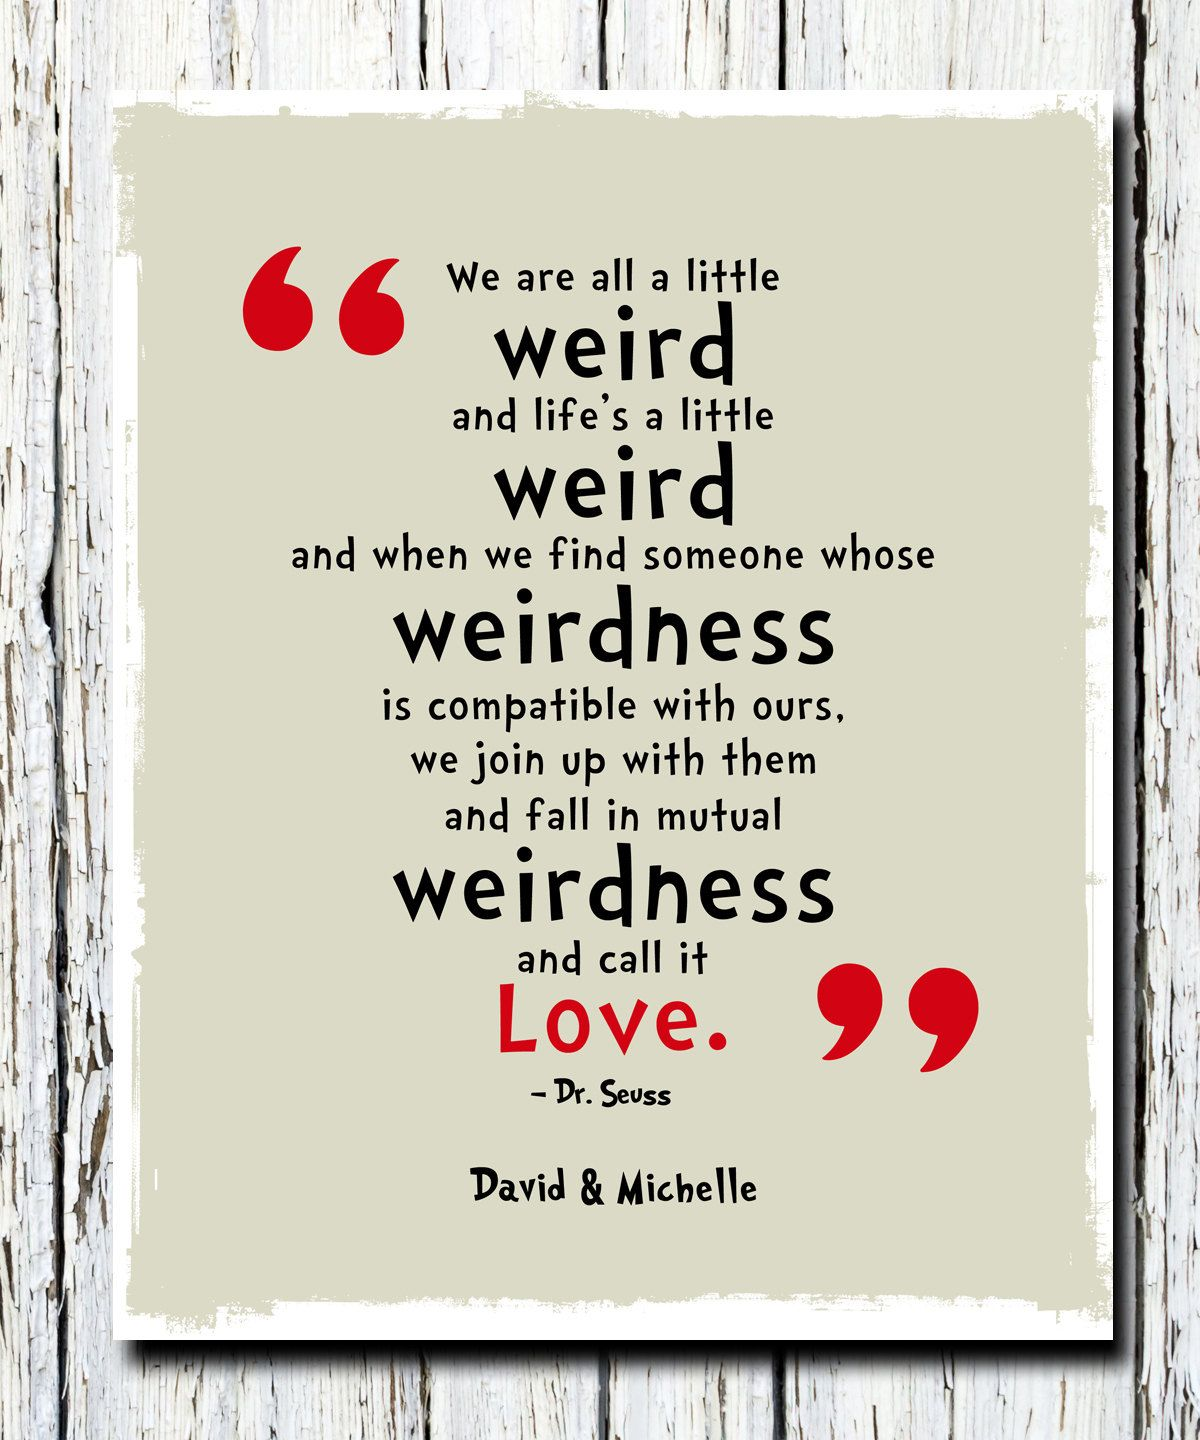 Dr Seuss Quotes About Friendship Personalized Drseuss Poster Print We Are All A Little Weird